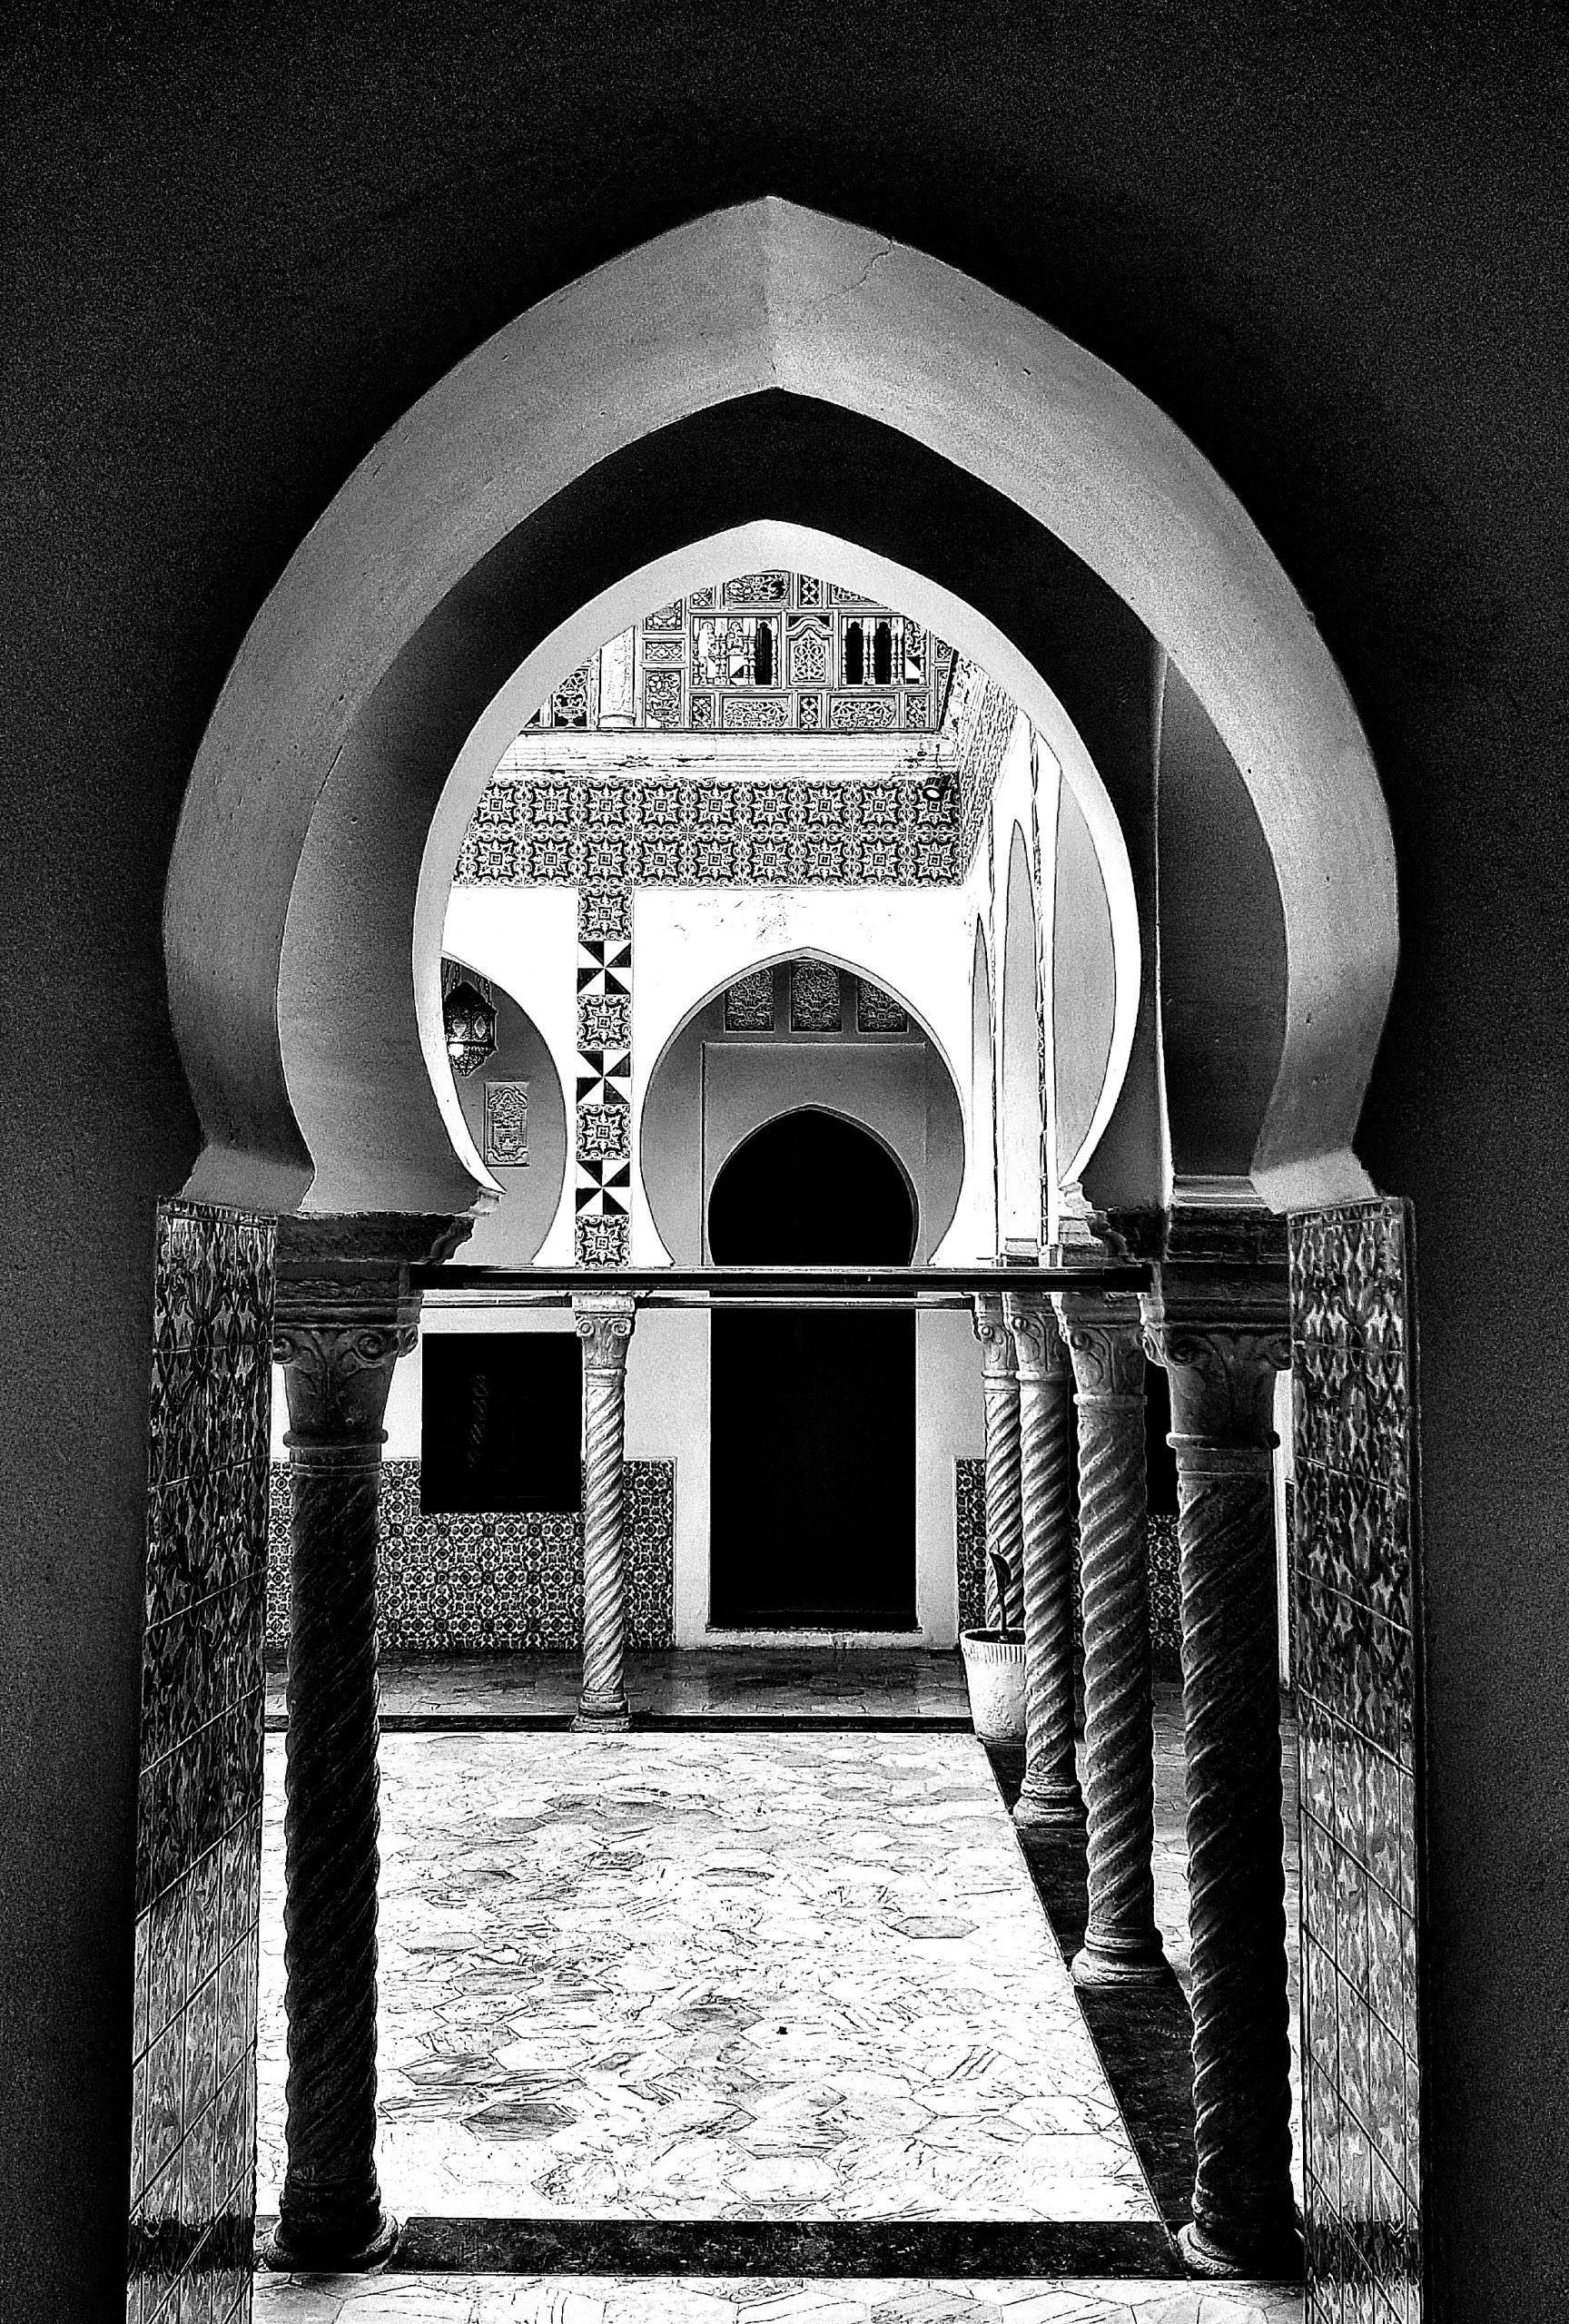 ALGIERS PALACE III, 2021 | Digital print on bright white photo rag Edition of 8 + 2 AP 59 x 41 cm Edition of 8 plus 2 artist's proofs Signed and numbered